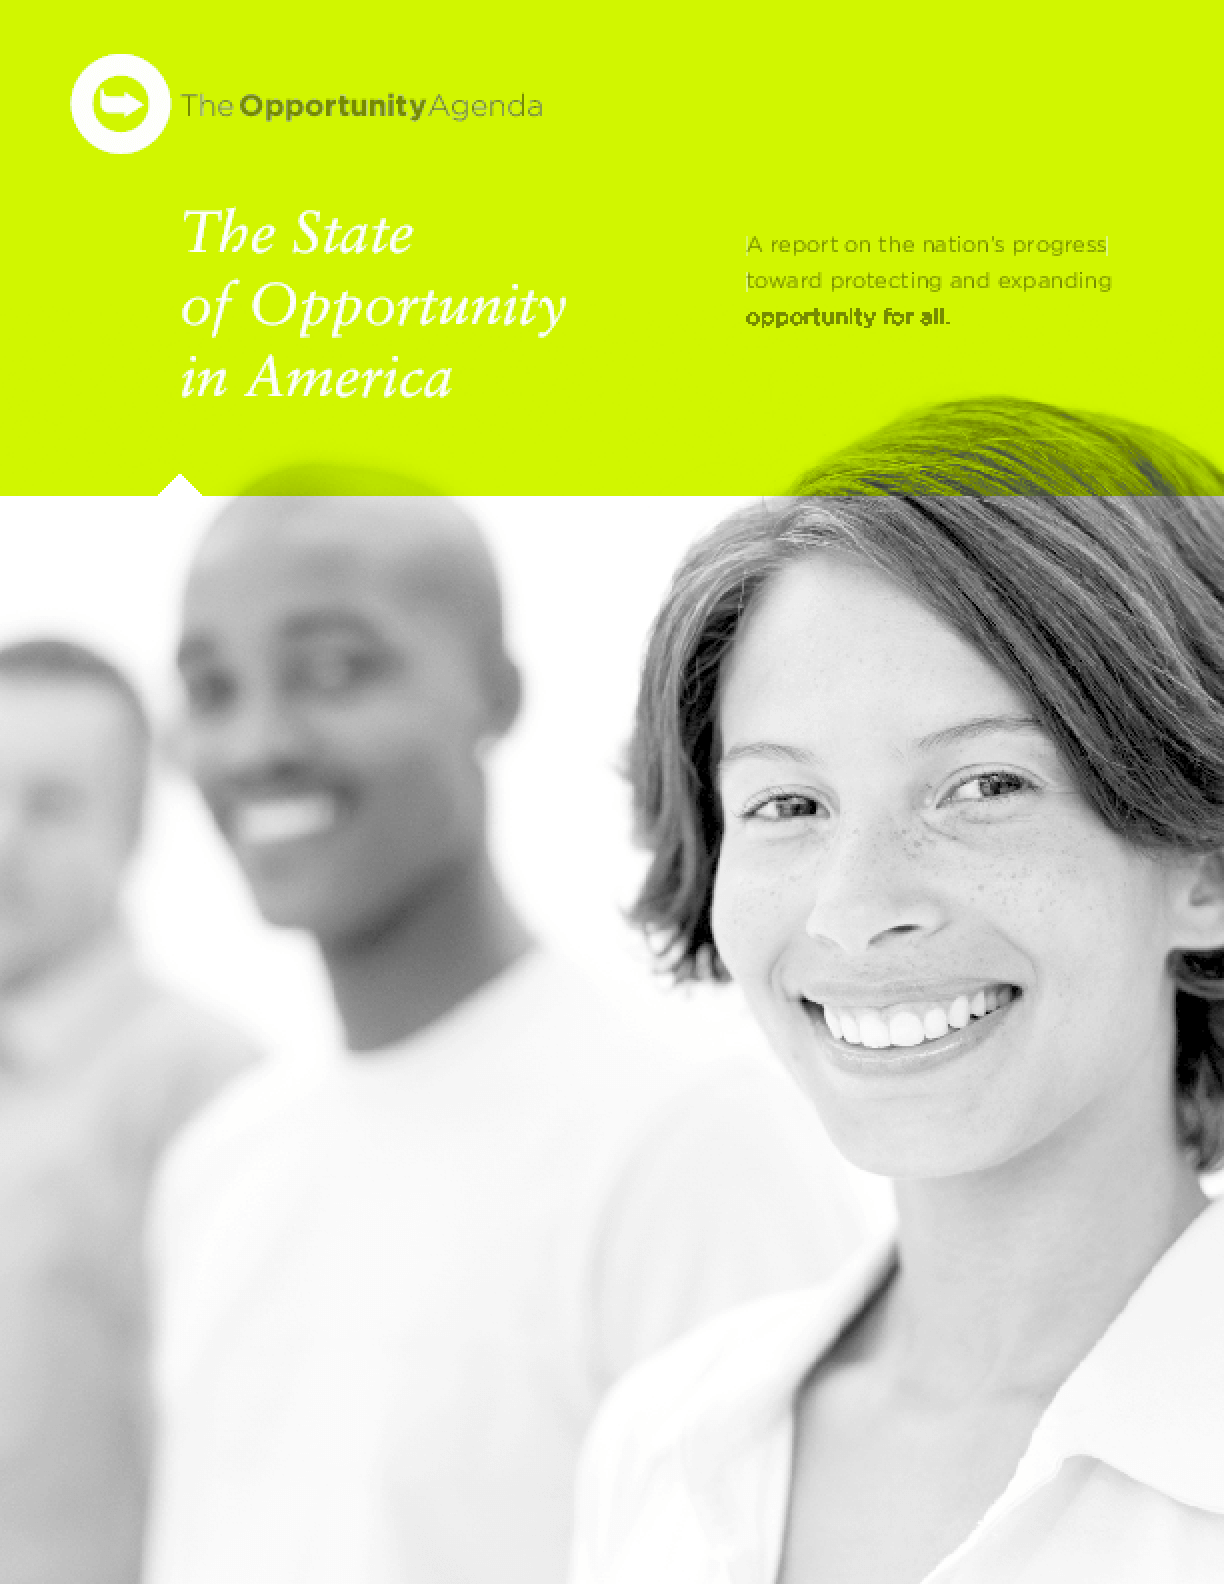 The State of Opportunity in America